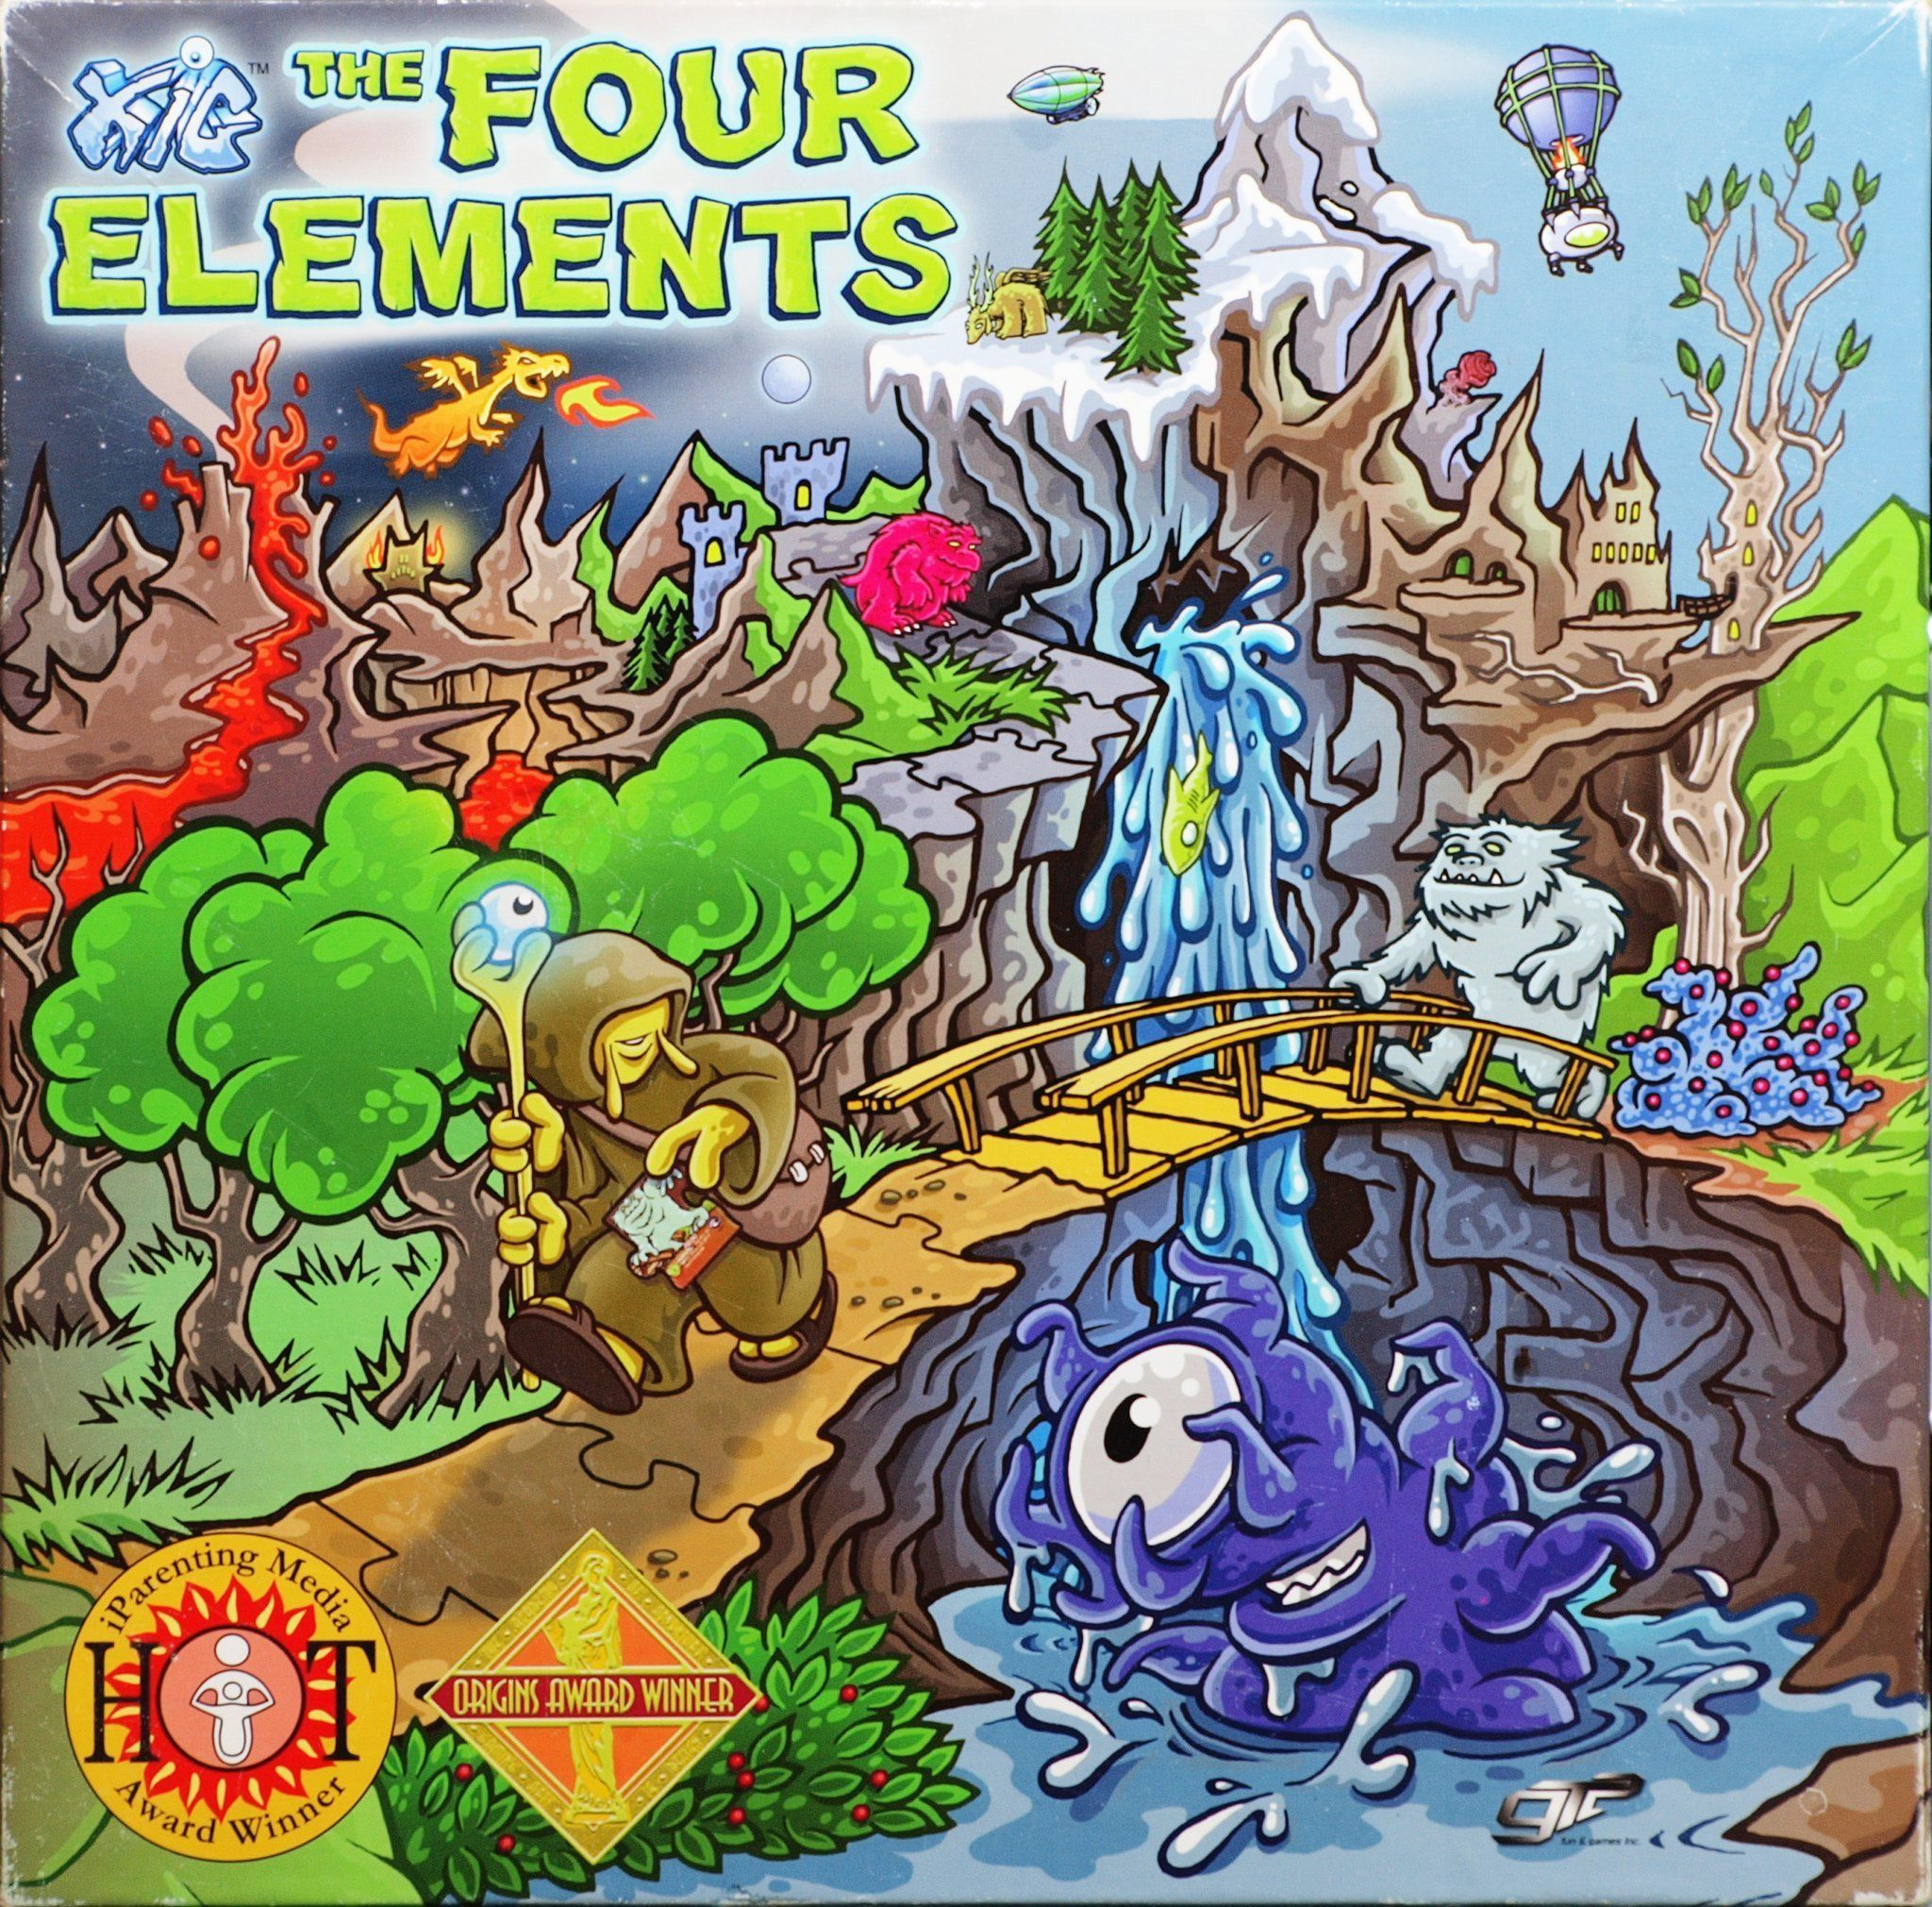 XIG: The Four Elements